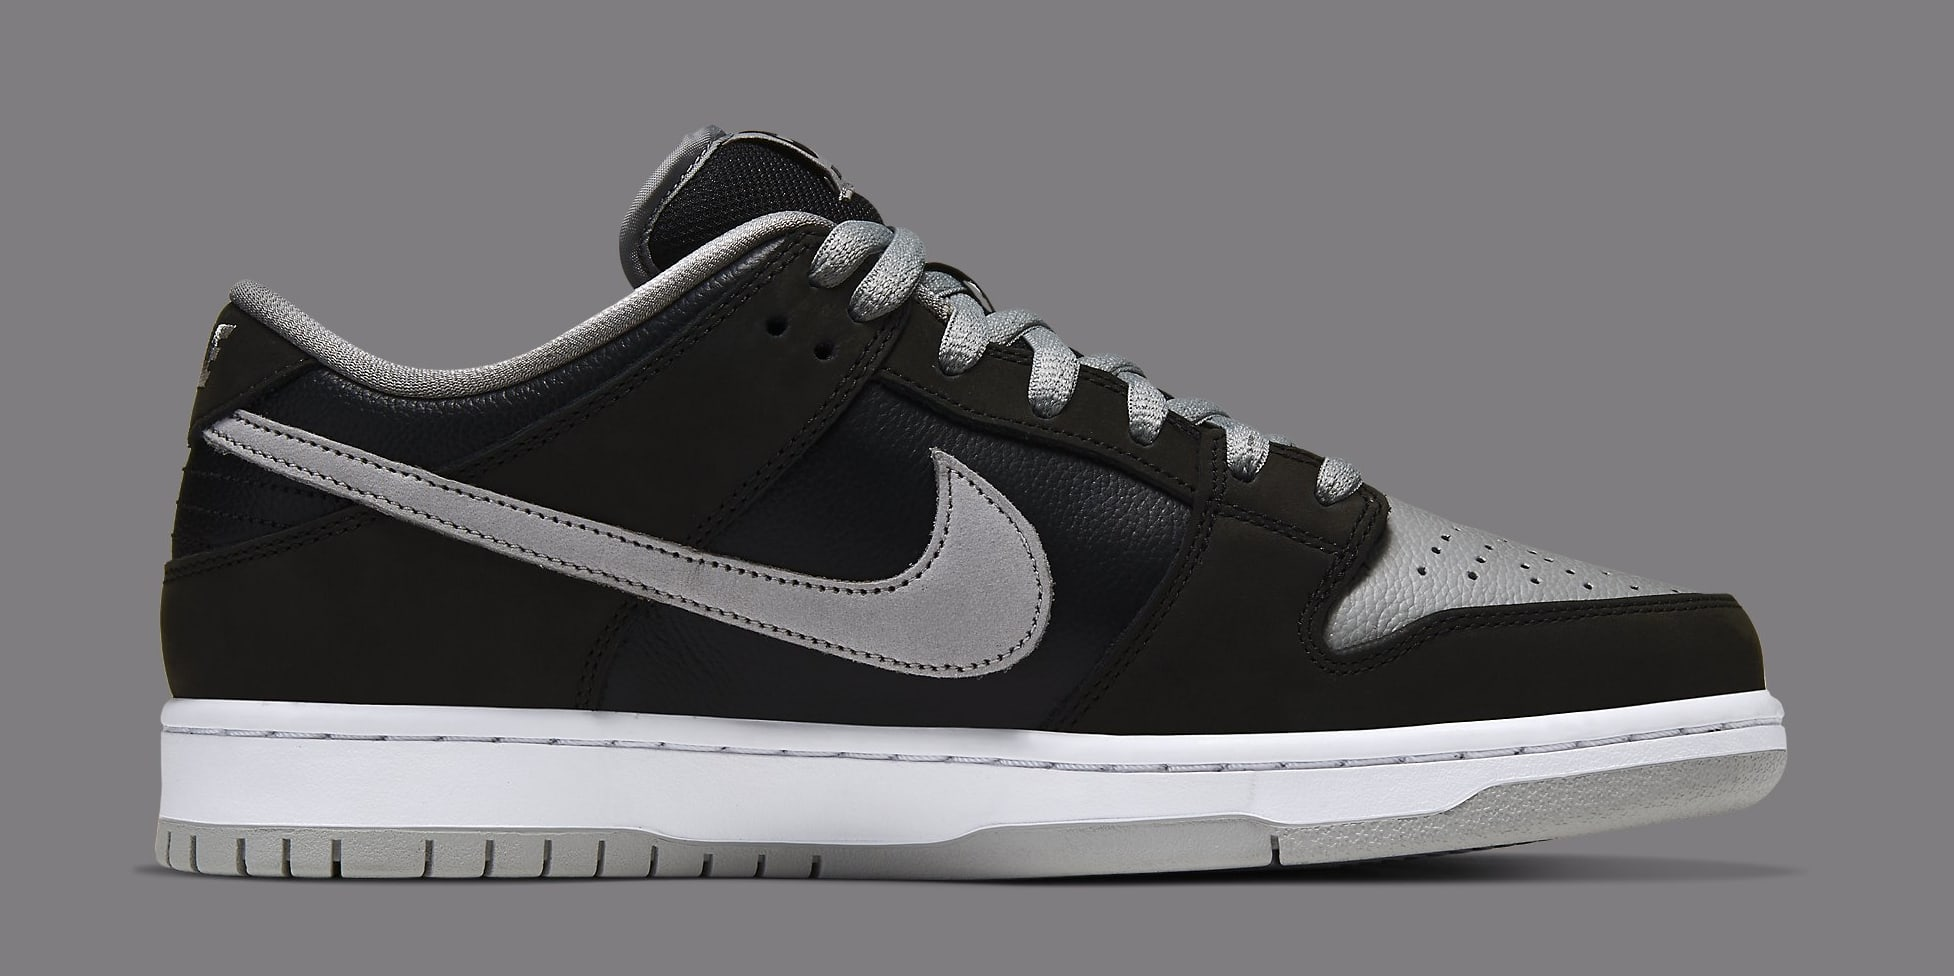 nike-sb-dunk-low-j-pack-shadow-bq6817-007-medial